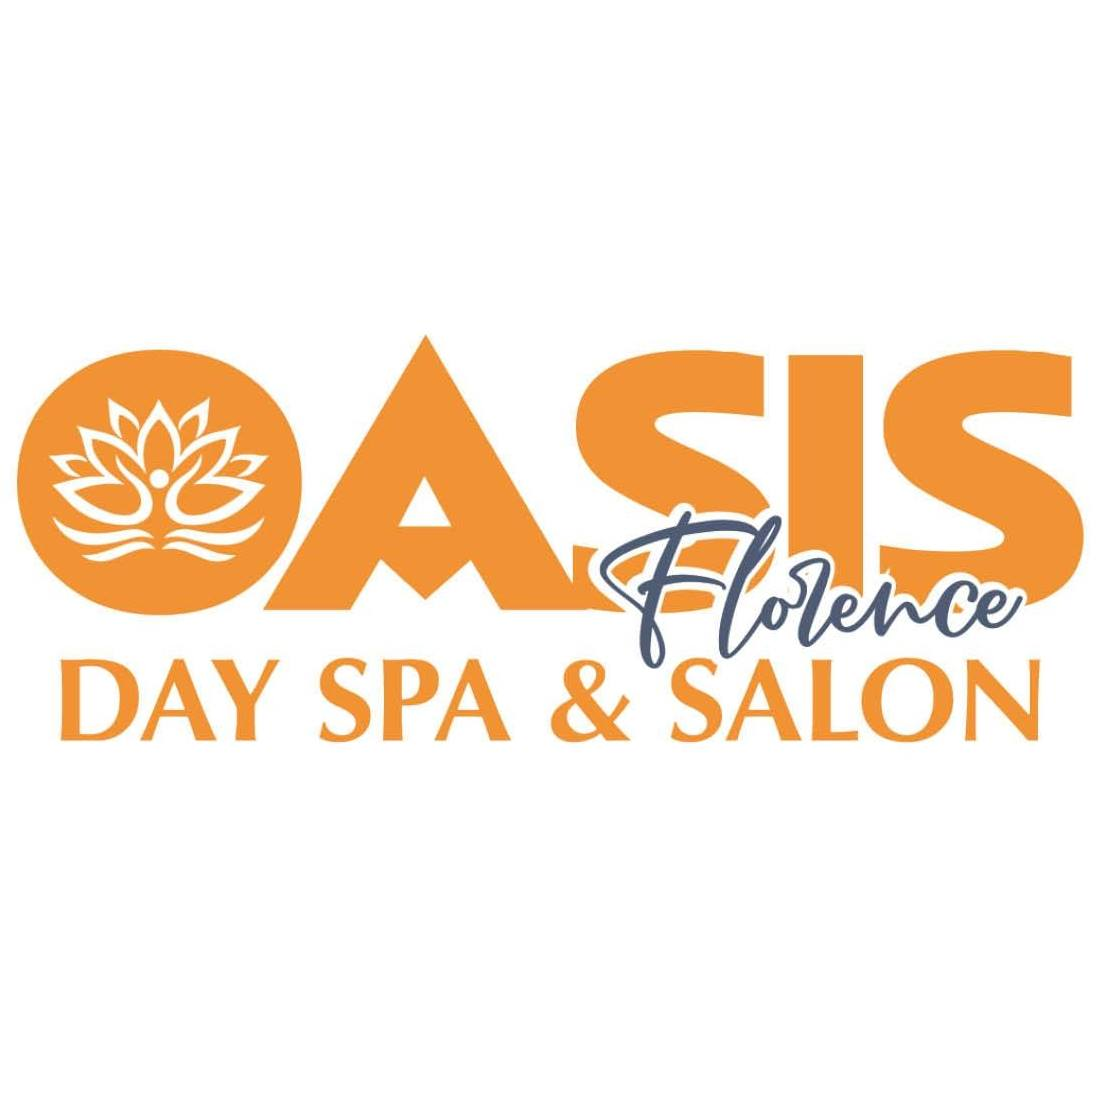 Business logo of Oasis Day Spa & Salon